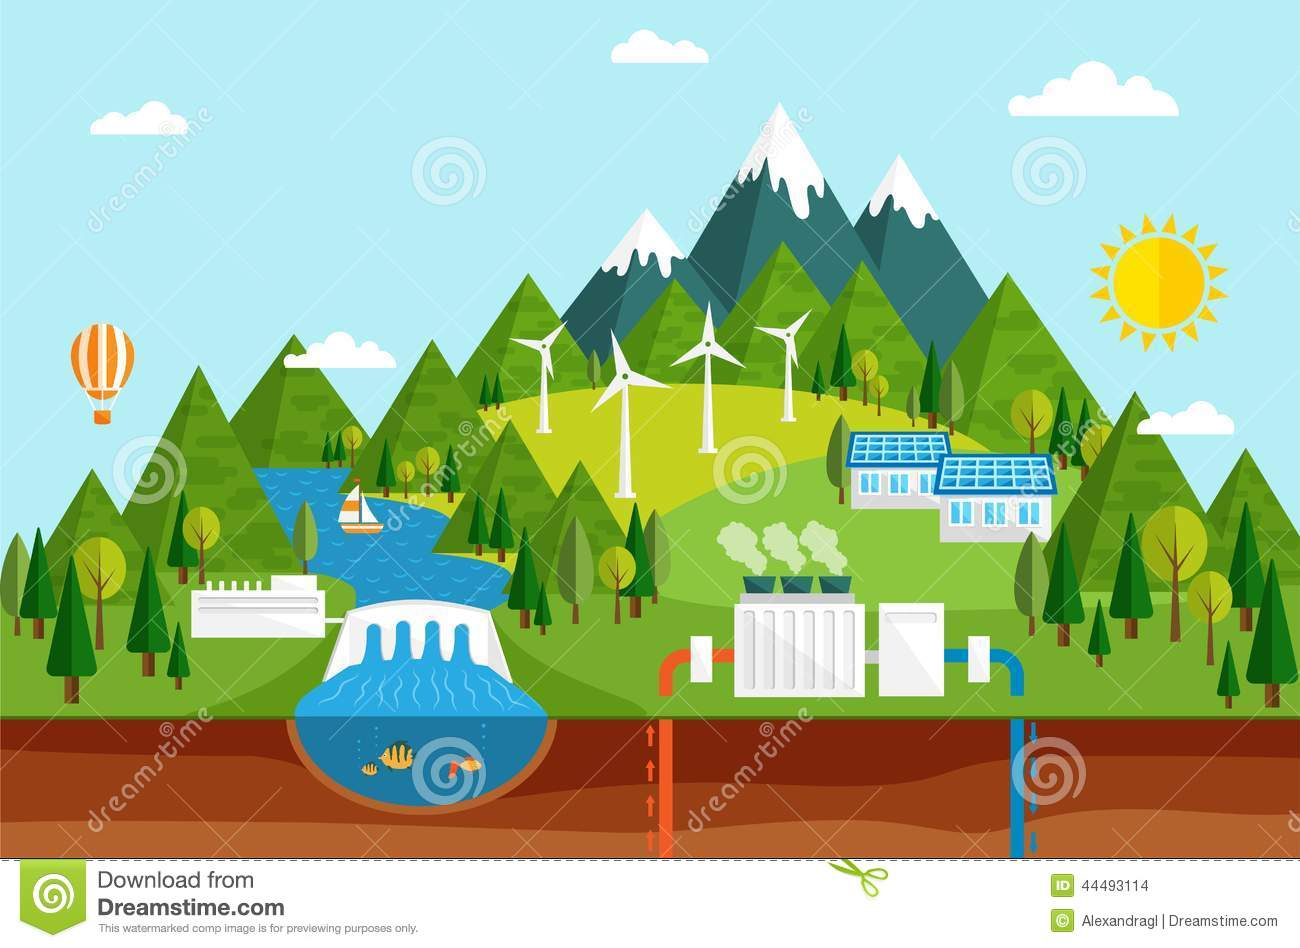 Renewable energy like hydro, solar, geothermal and wind power ...